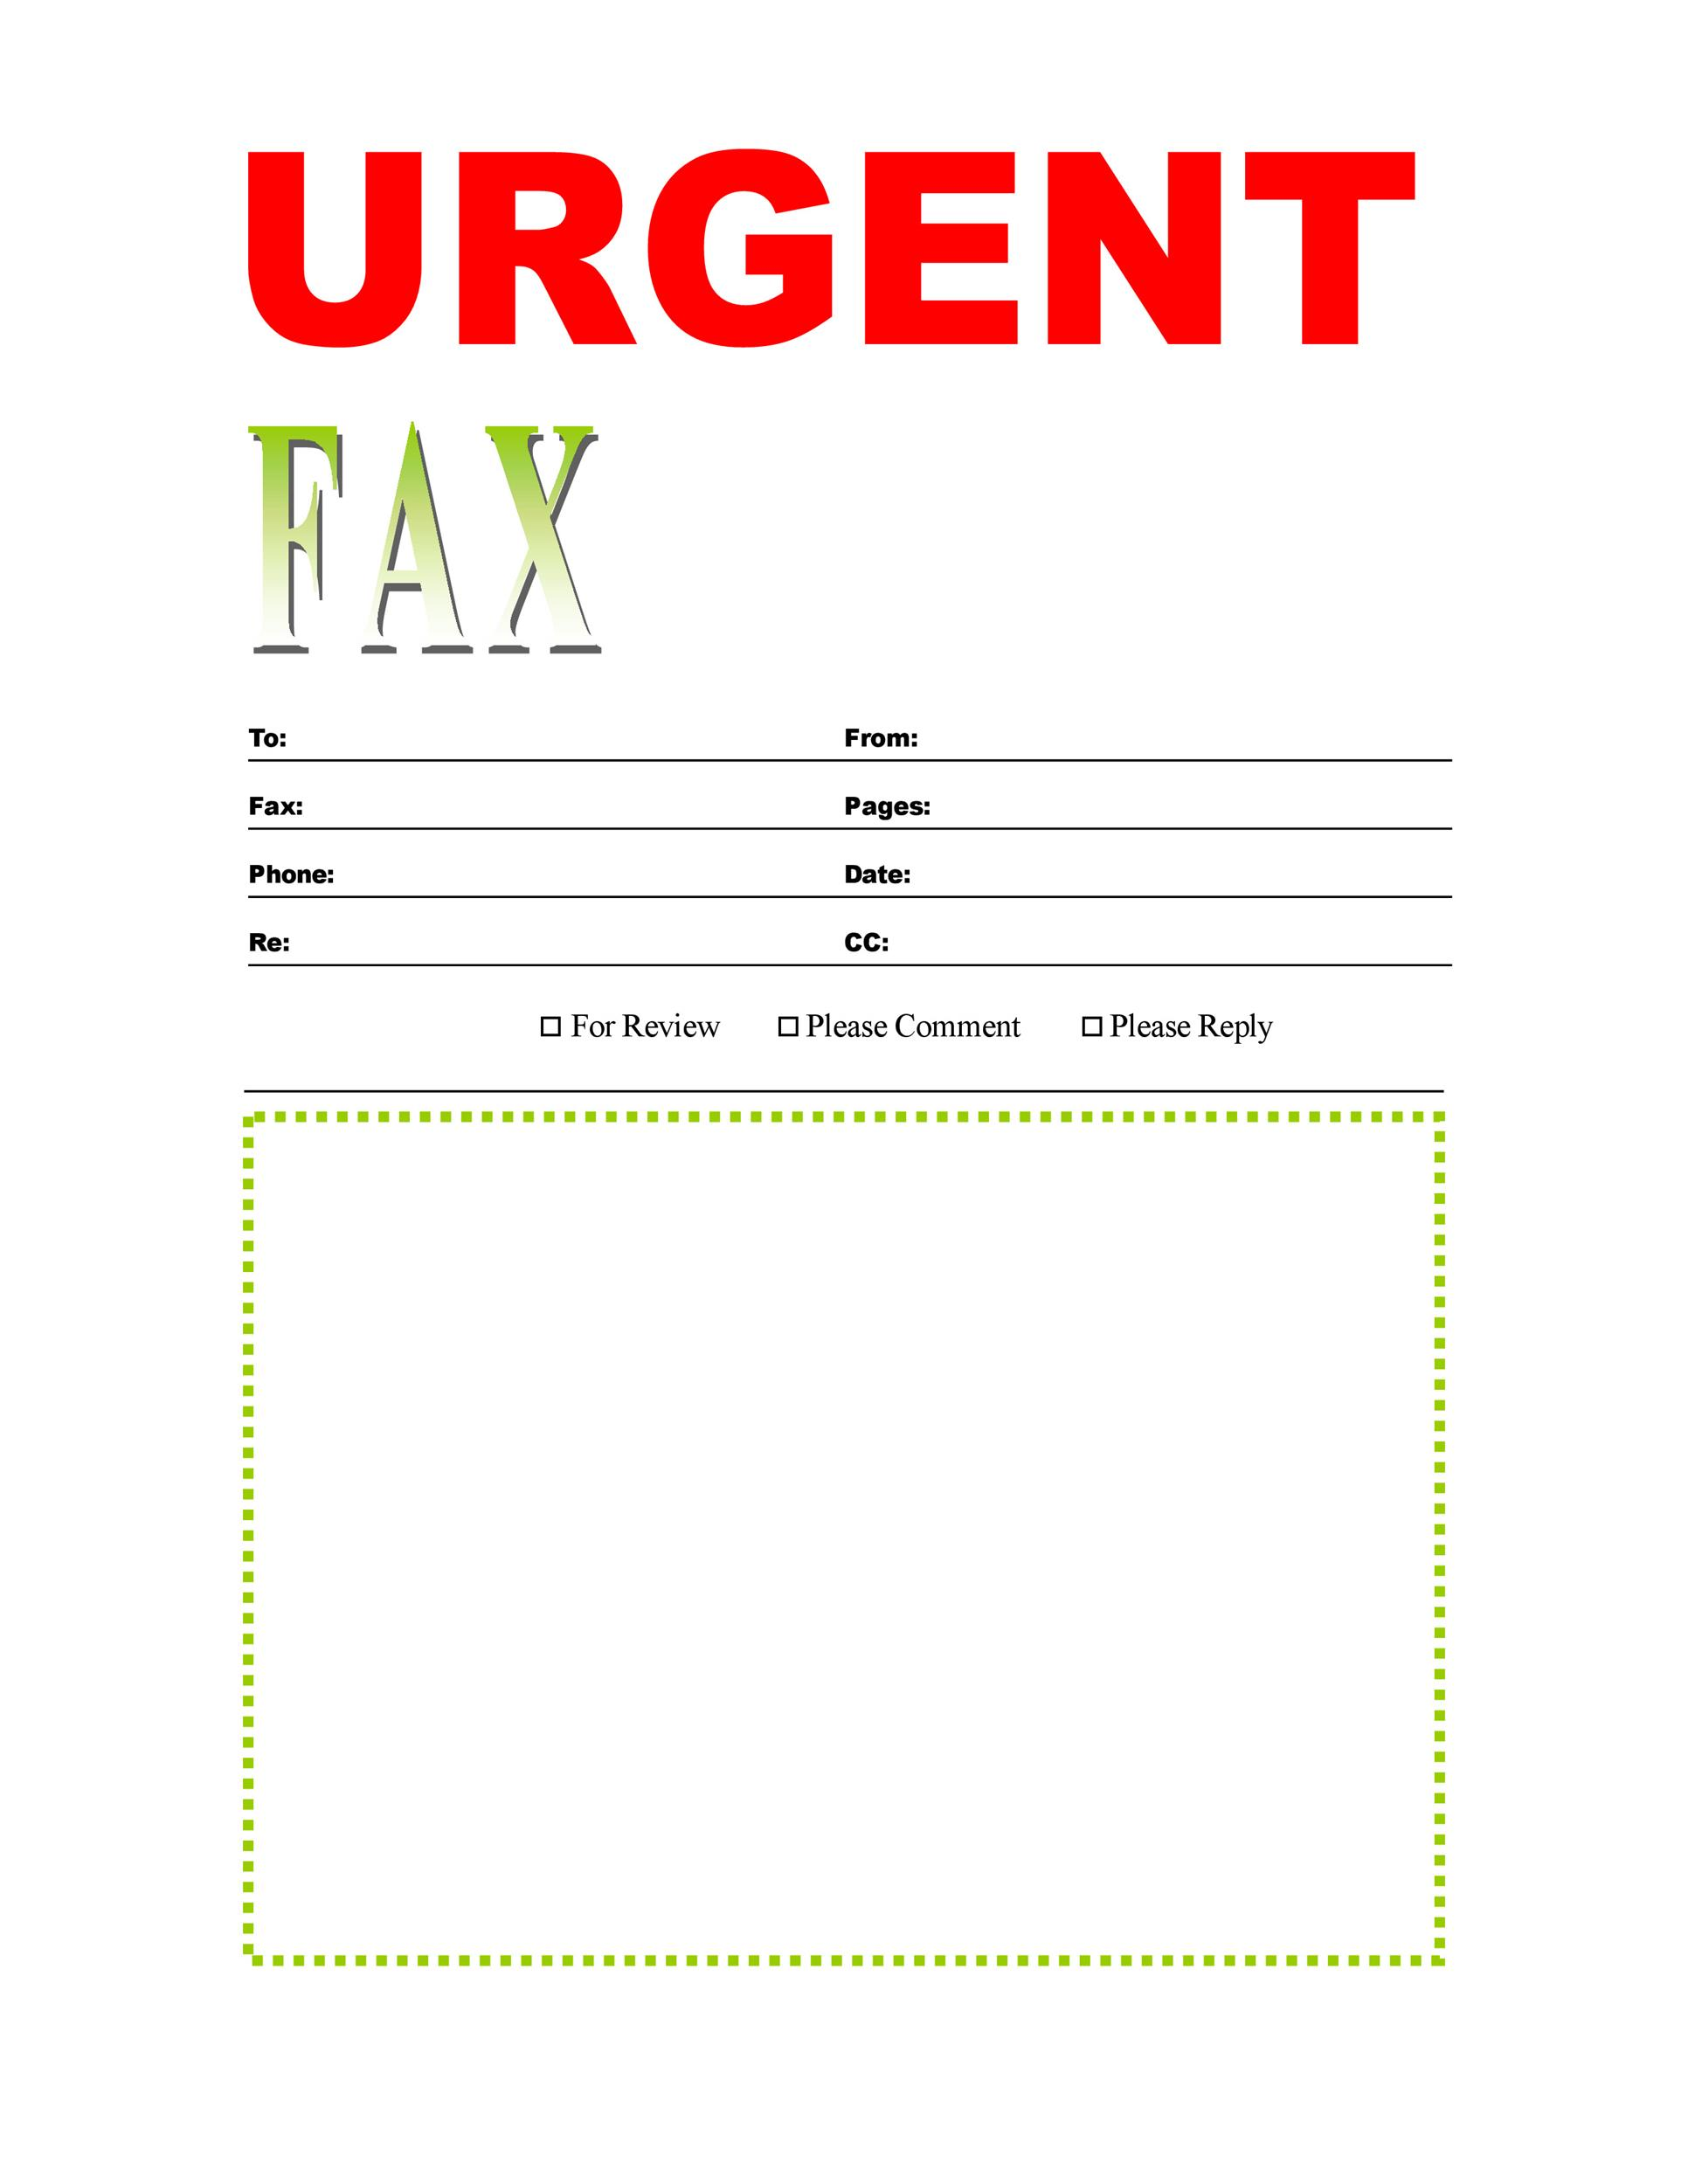 Fax Cover Page Printable Tree Fax Cover Sheet Word Format Printable